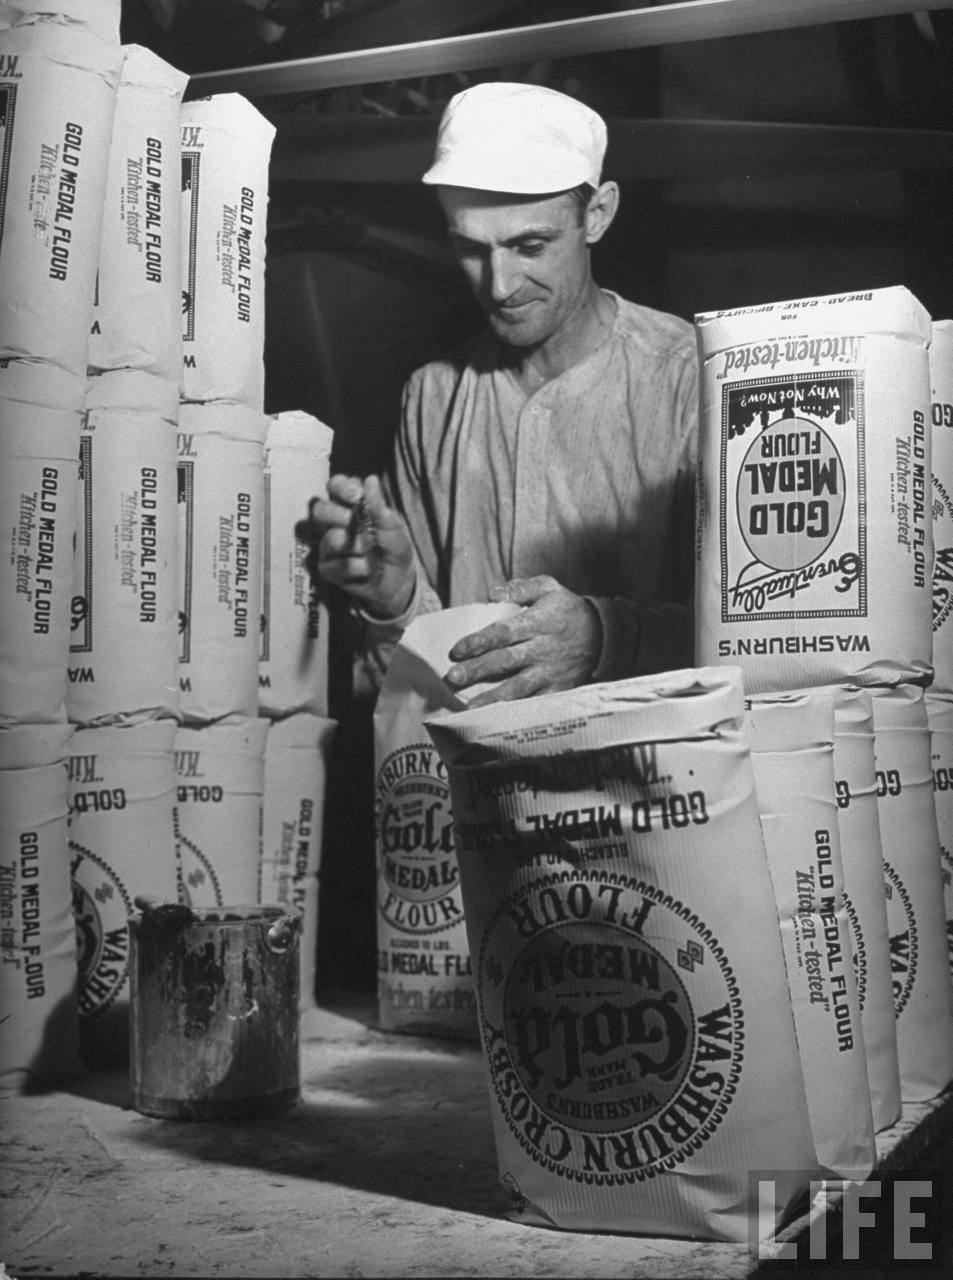 Worker brushing paste on end edges of freshly-filled sacks which he will then put upside down (R) until the paste dries at WASHBURN'S GOLD MEDAL FLOUR mill.